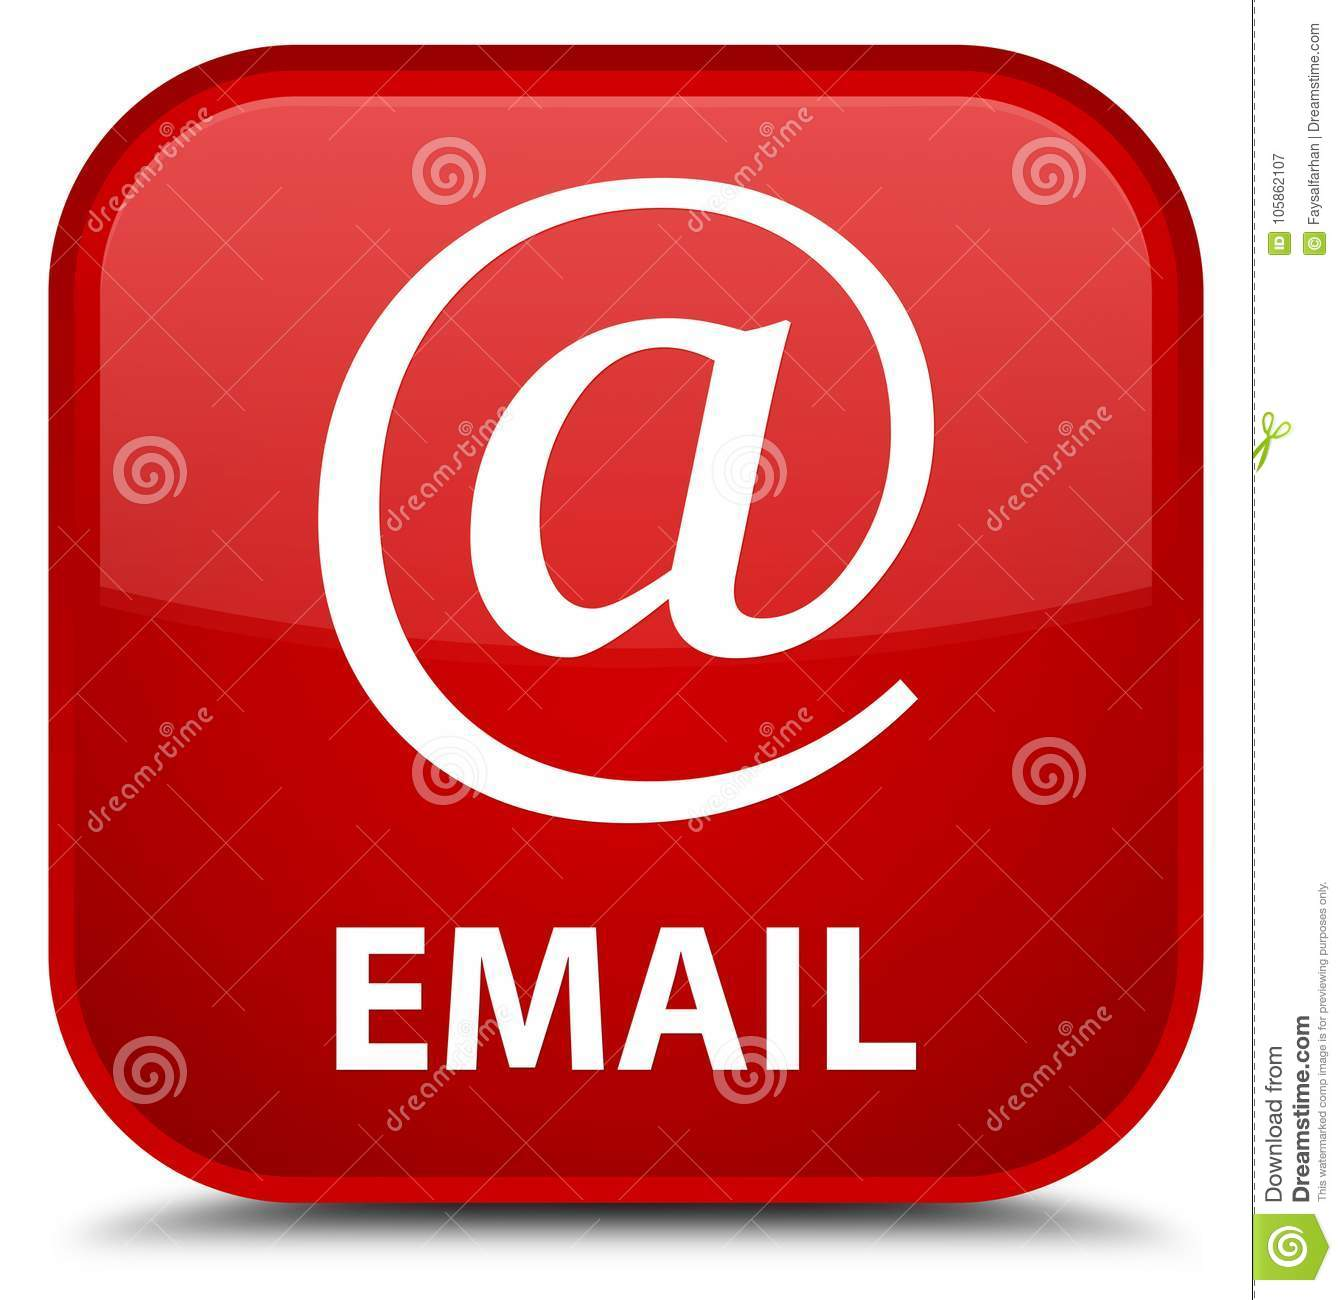 Email (address icon) special red square button